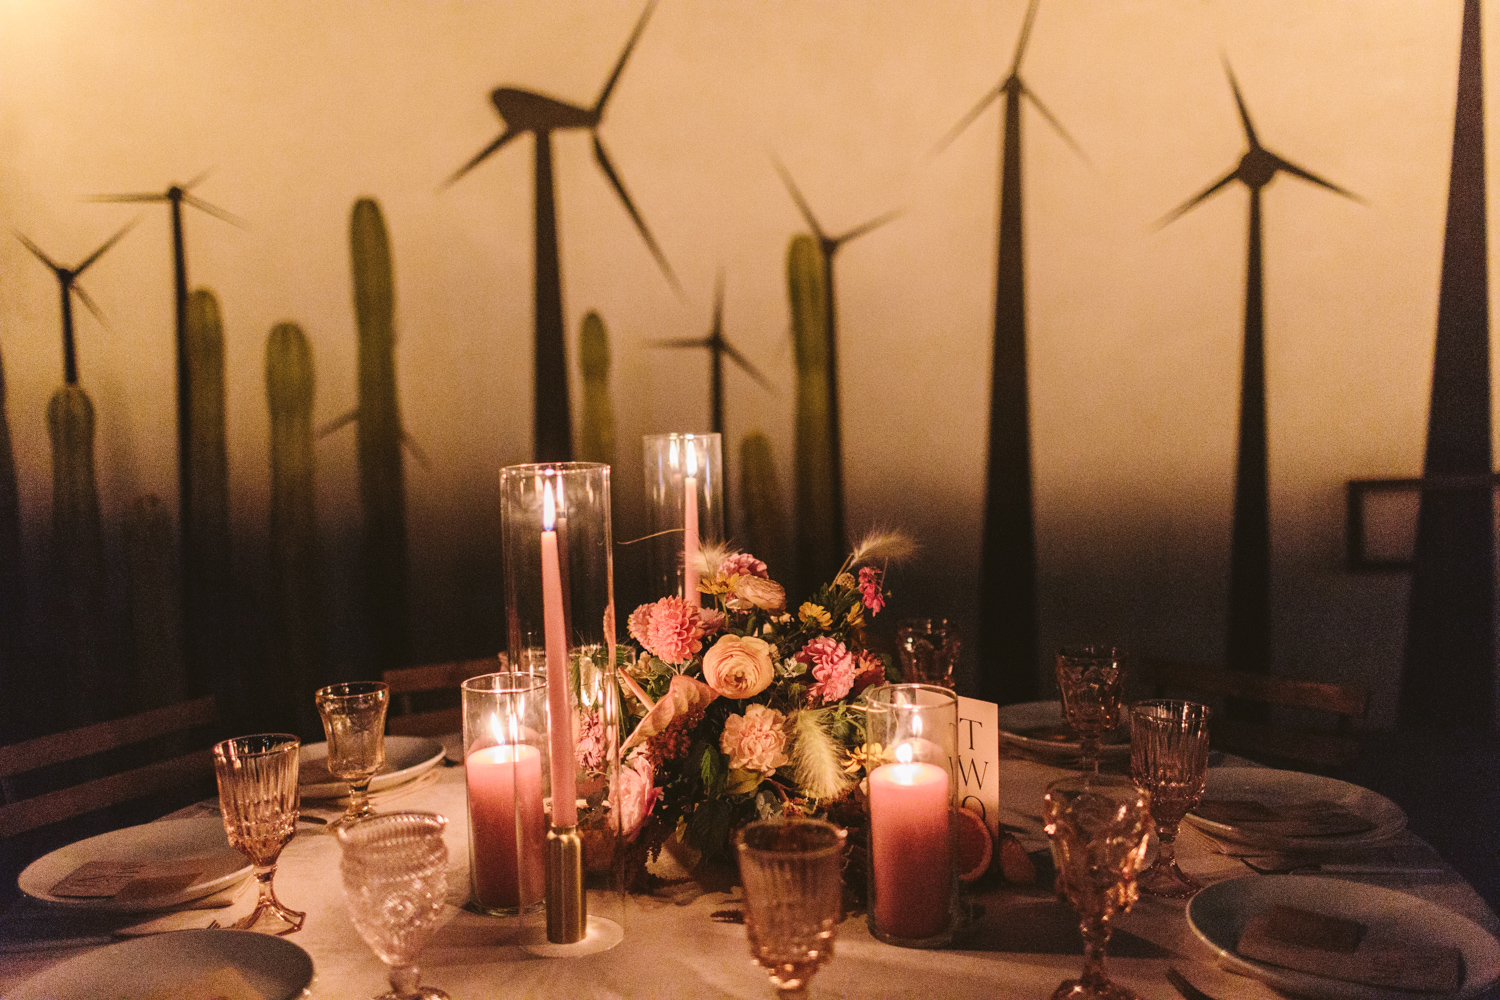 westlund-photography-palm-springs-wedding-74.jpg